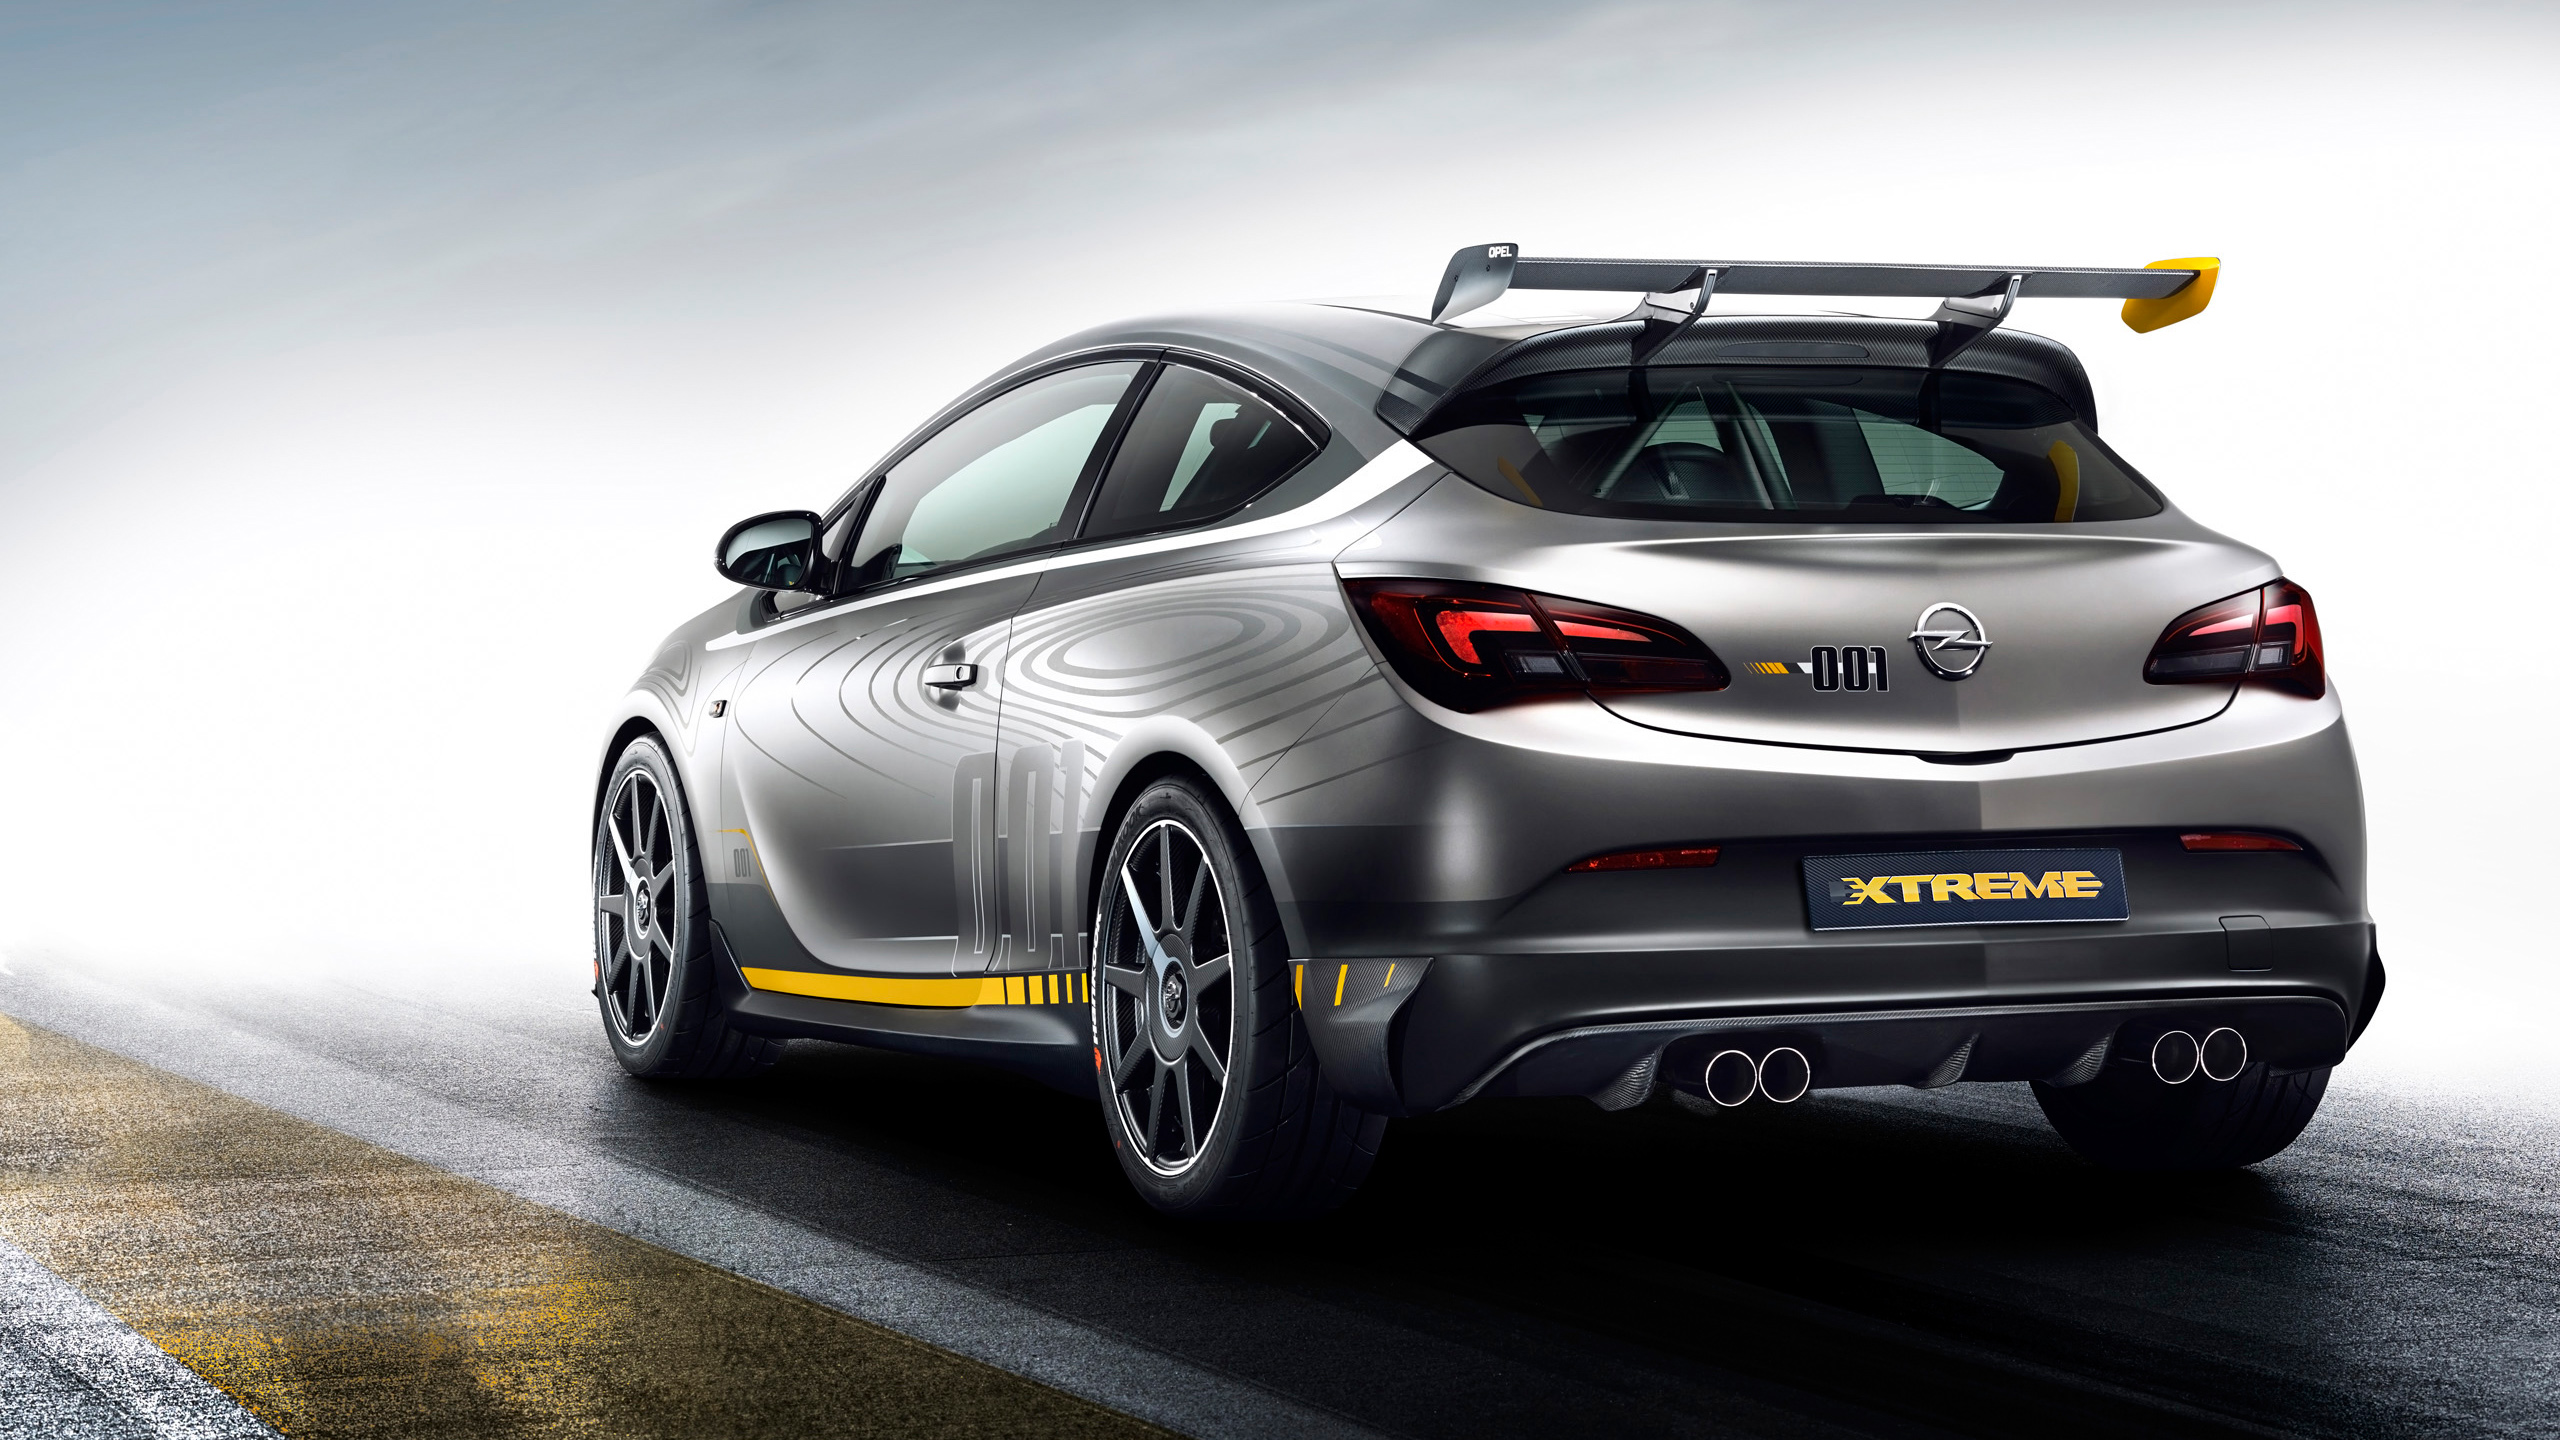 2014 opel astra opc extreme 2 wallpaper hd car wallpapers id 4219. Black Bedroom Furniture Sets. Home Design Ideas